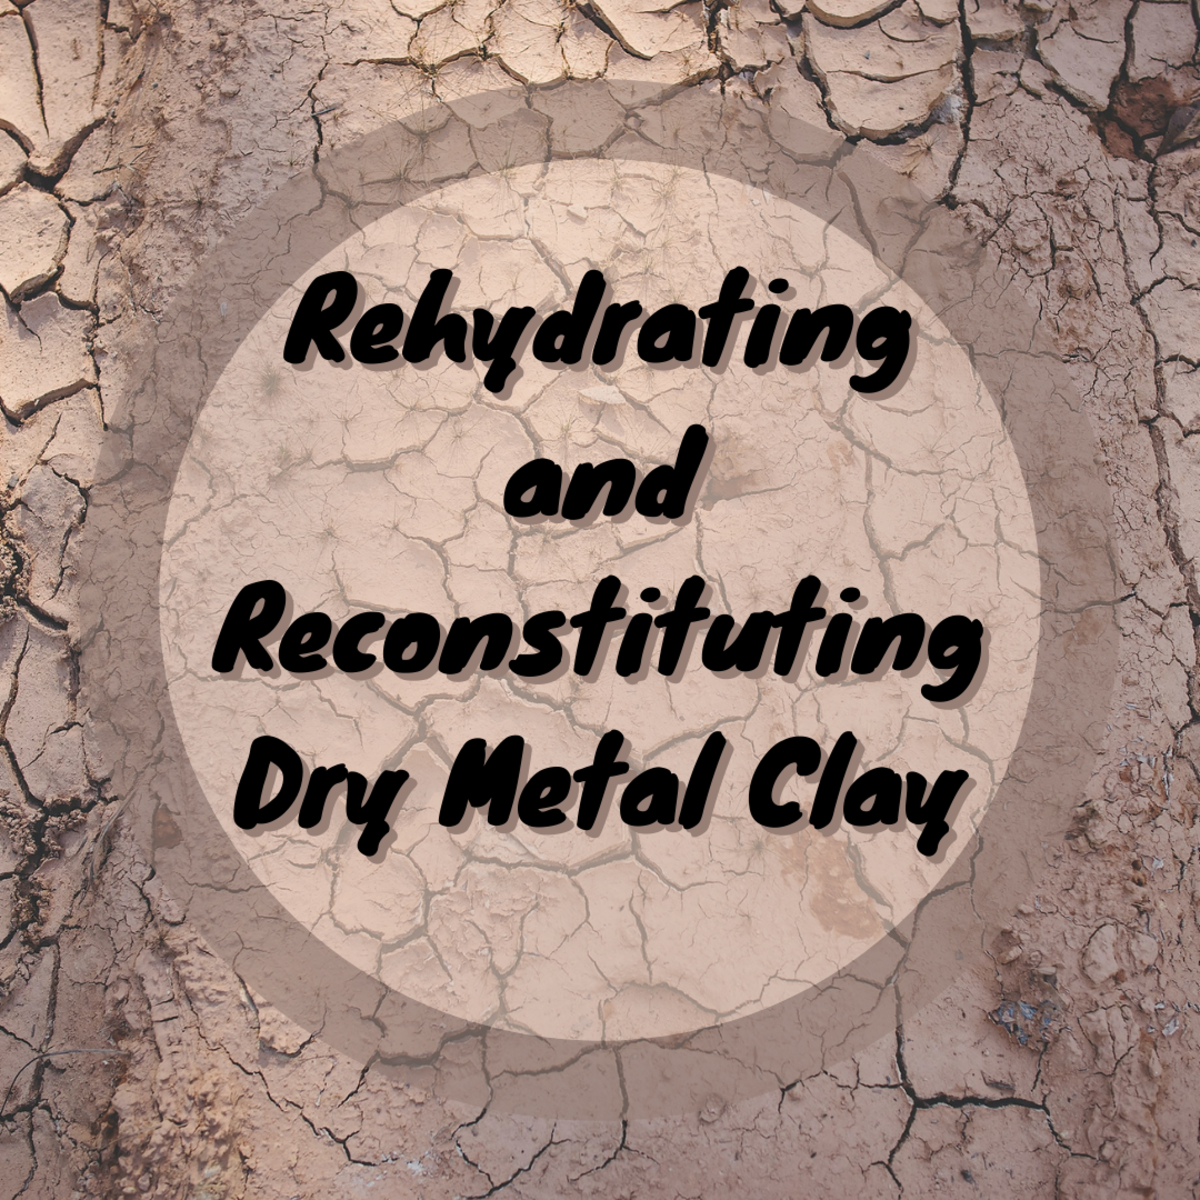 How to Rehydrate or Reconstitute Dry Metal Clay